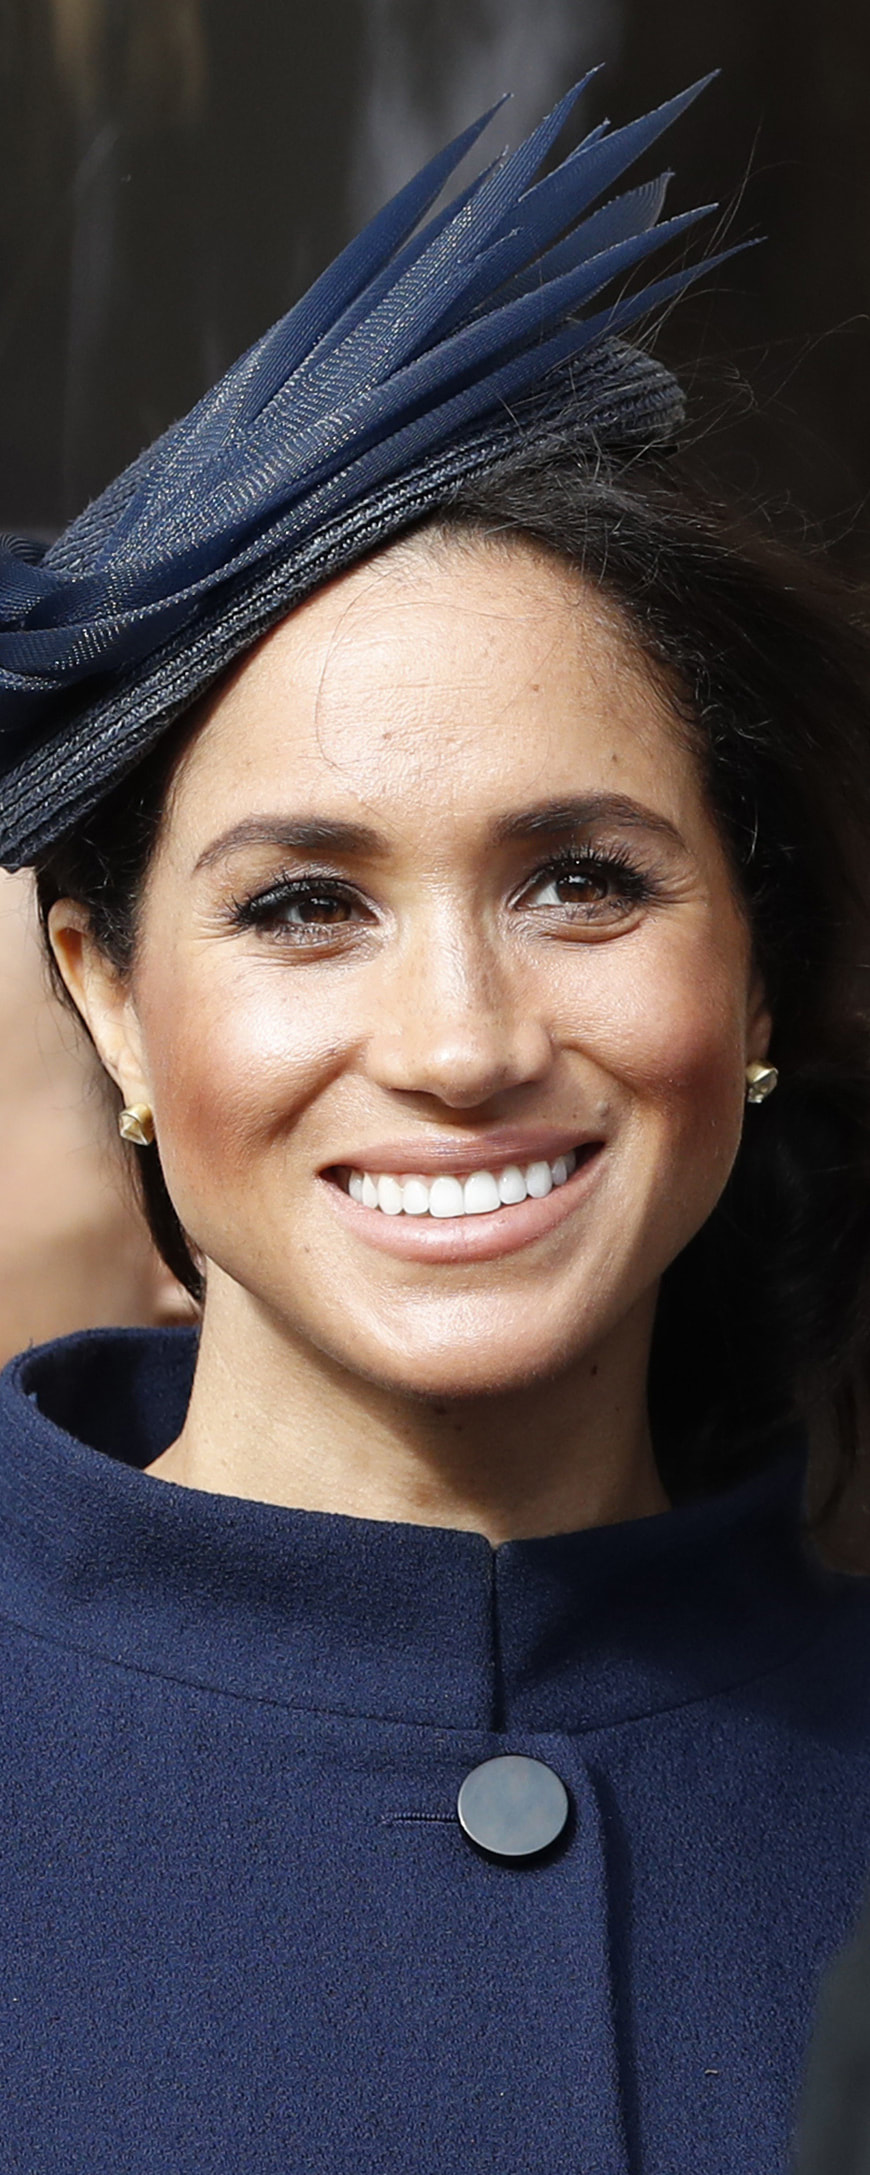 Pippa Small Herkimer Diamond Stud Earrings as seen on Meghan Markle, the Duchess of Sussex at wedding of Princess Eugenie and Jack Brooksbank